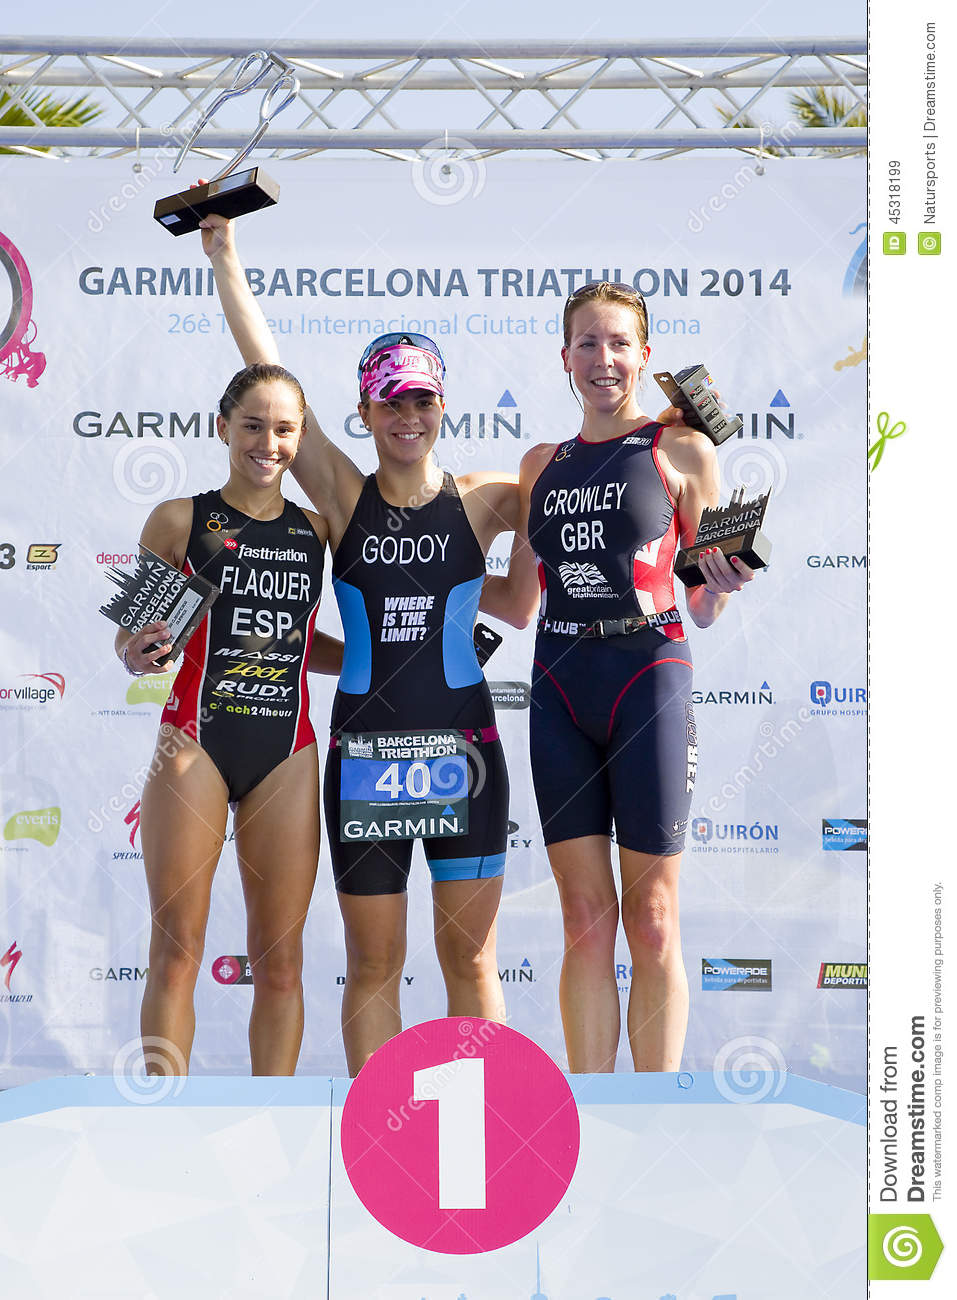 Triathlon barcelona women podium editorial stock image - Forlady barcelona ...